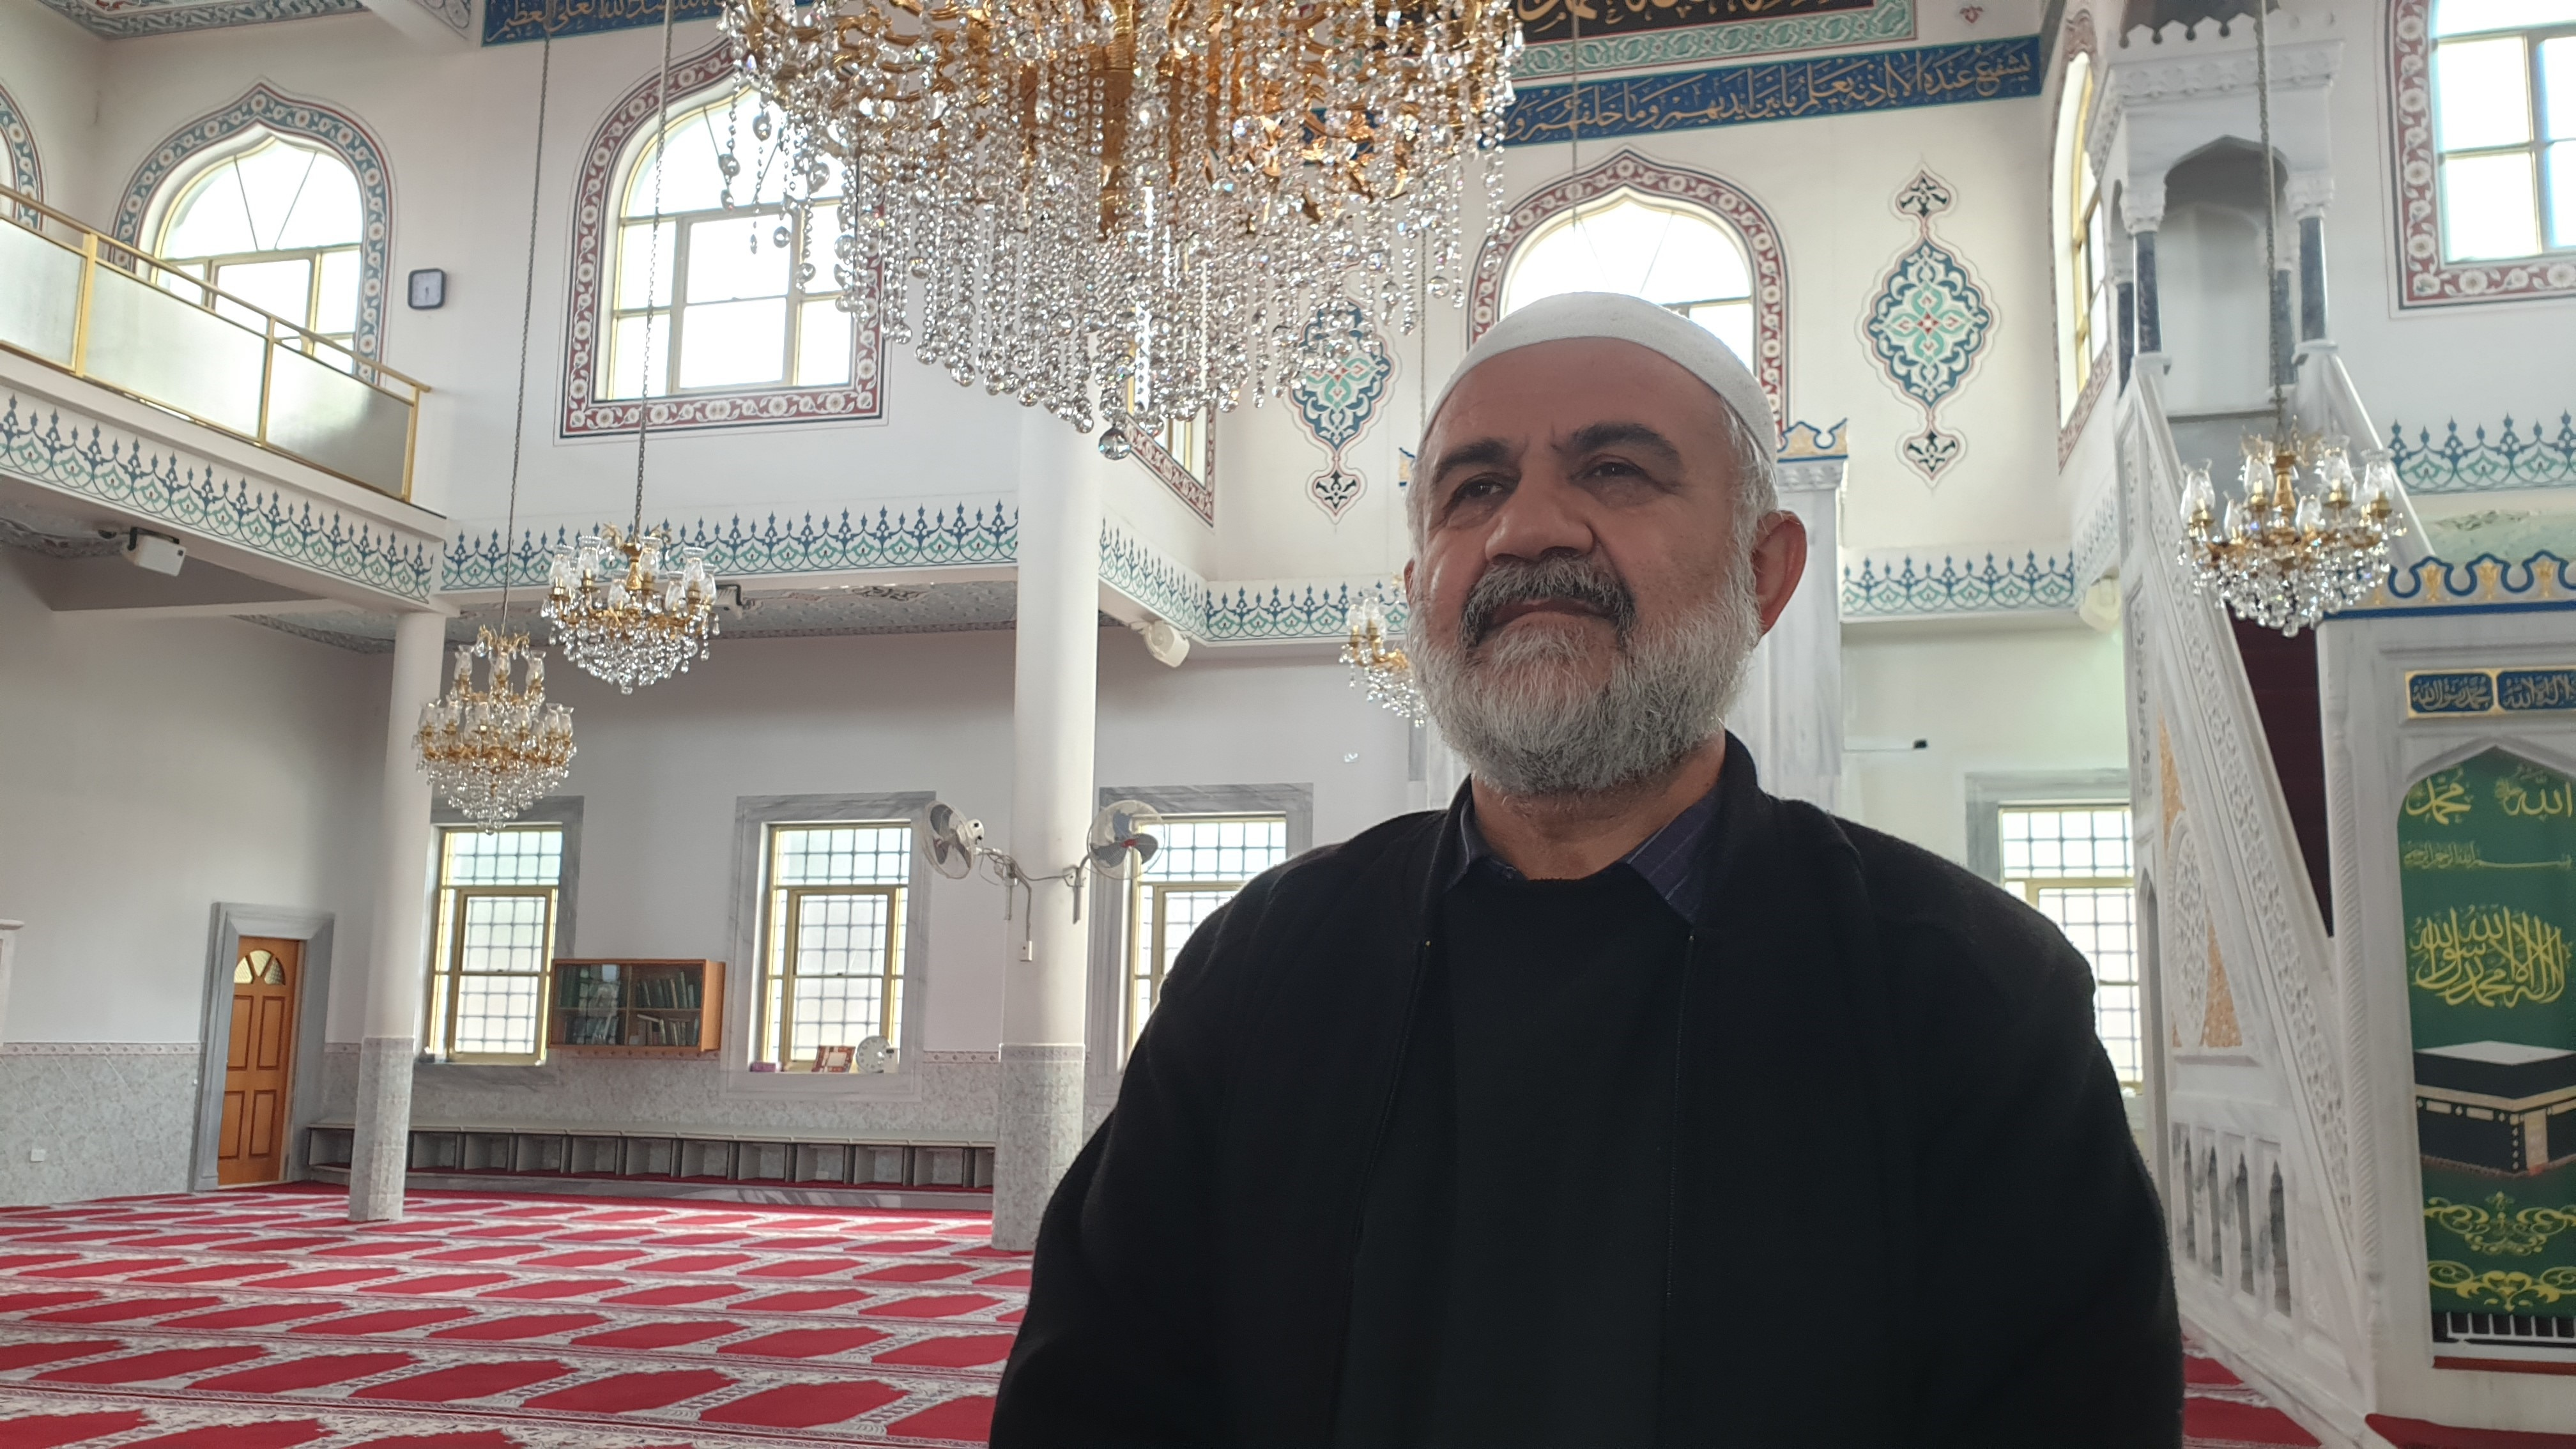 Ergan Genel says he is concerned about hundreds turning up for services at Auburn Gallipoli Mosque.